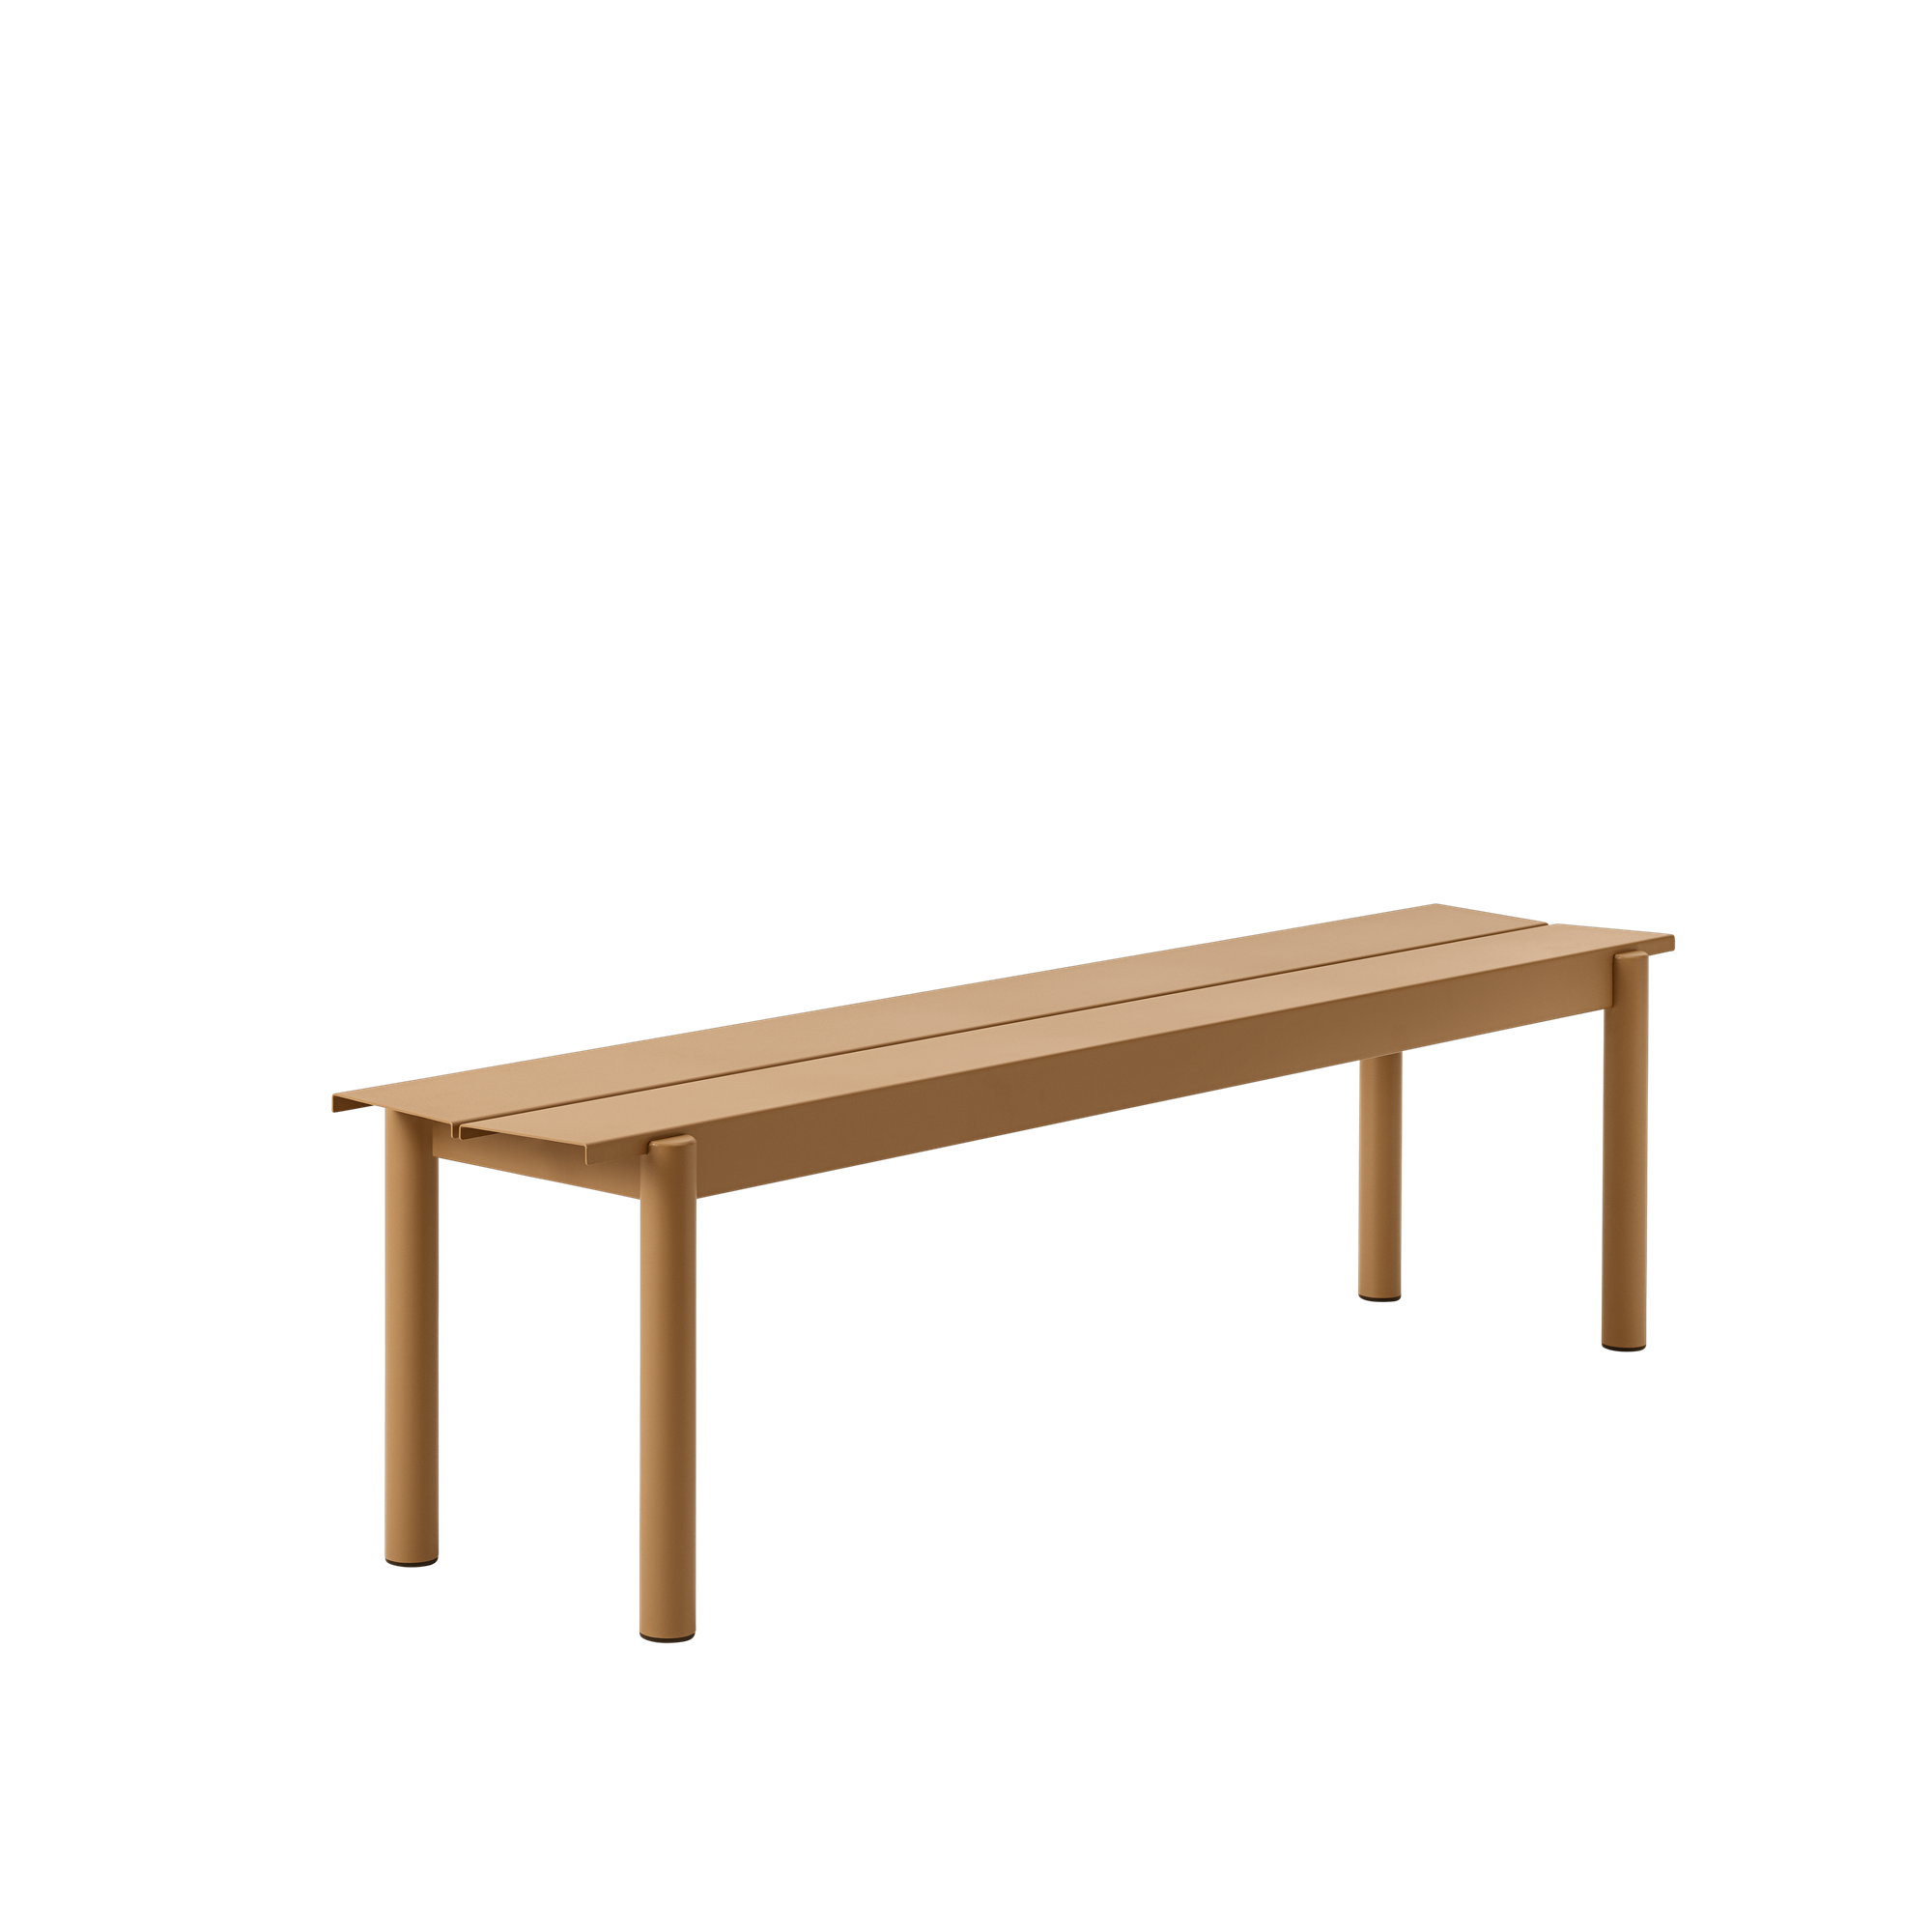 Banc Outdoor Linear - MUUTO